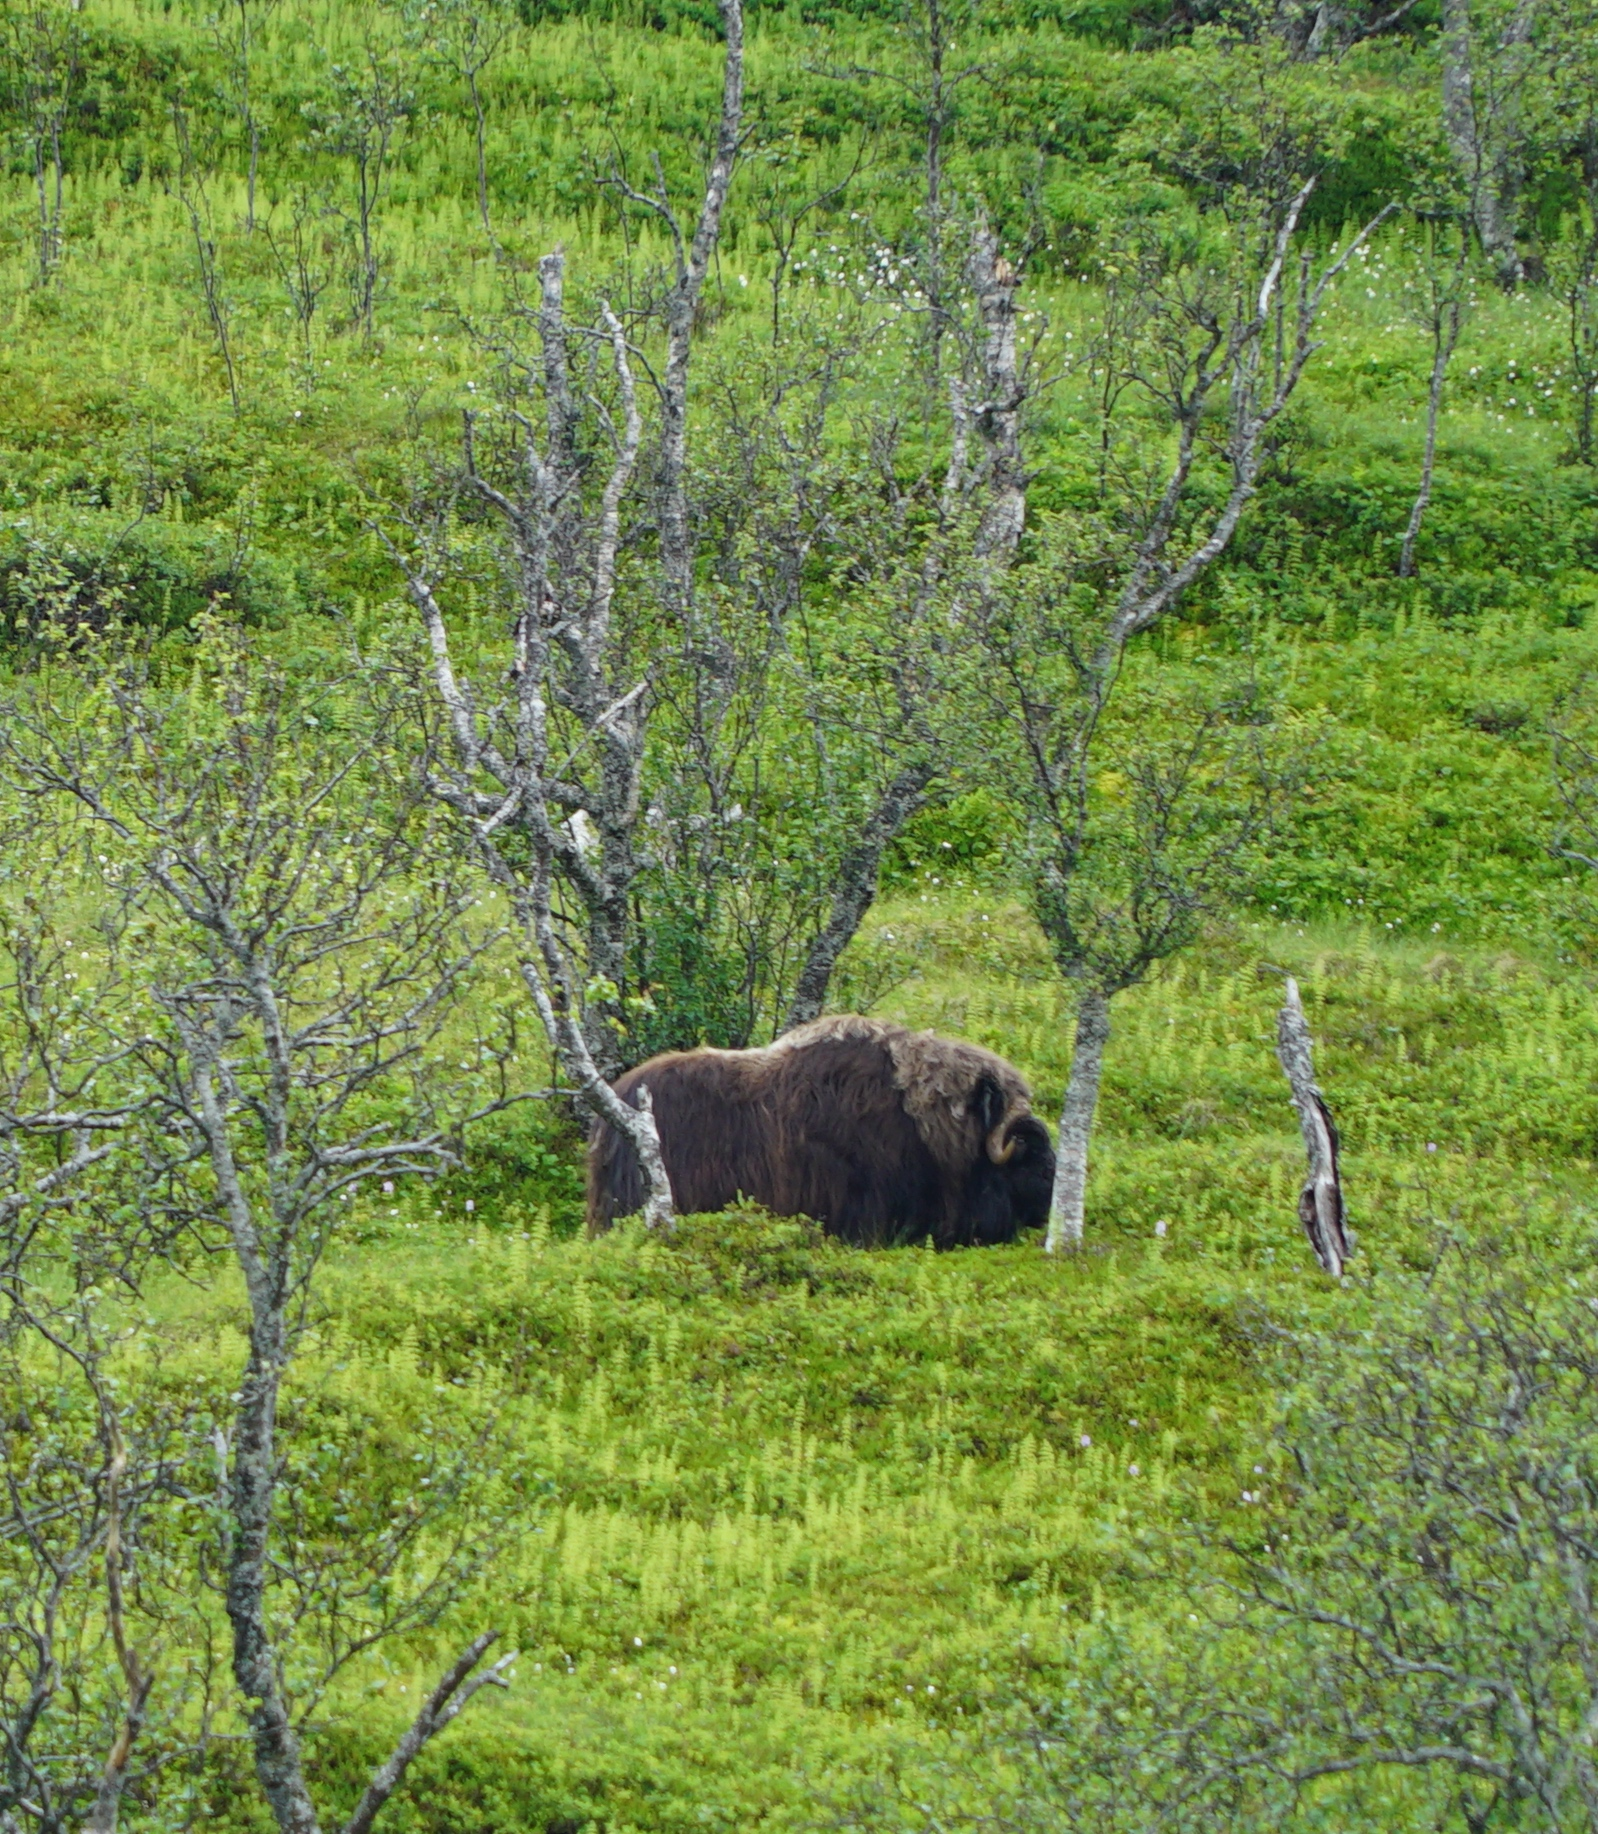 #Sightseeing | #Trosmø | #Musk ox